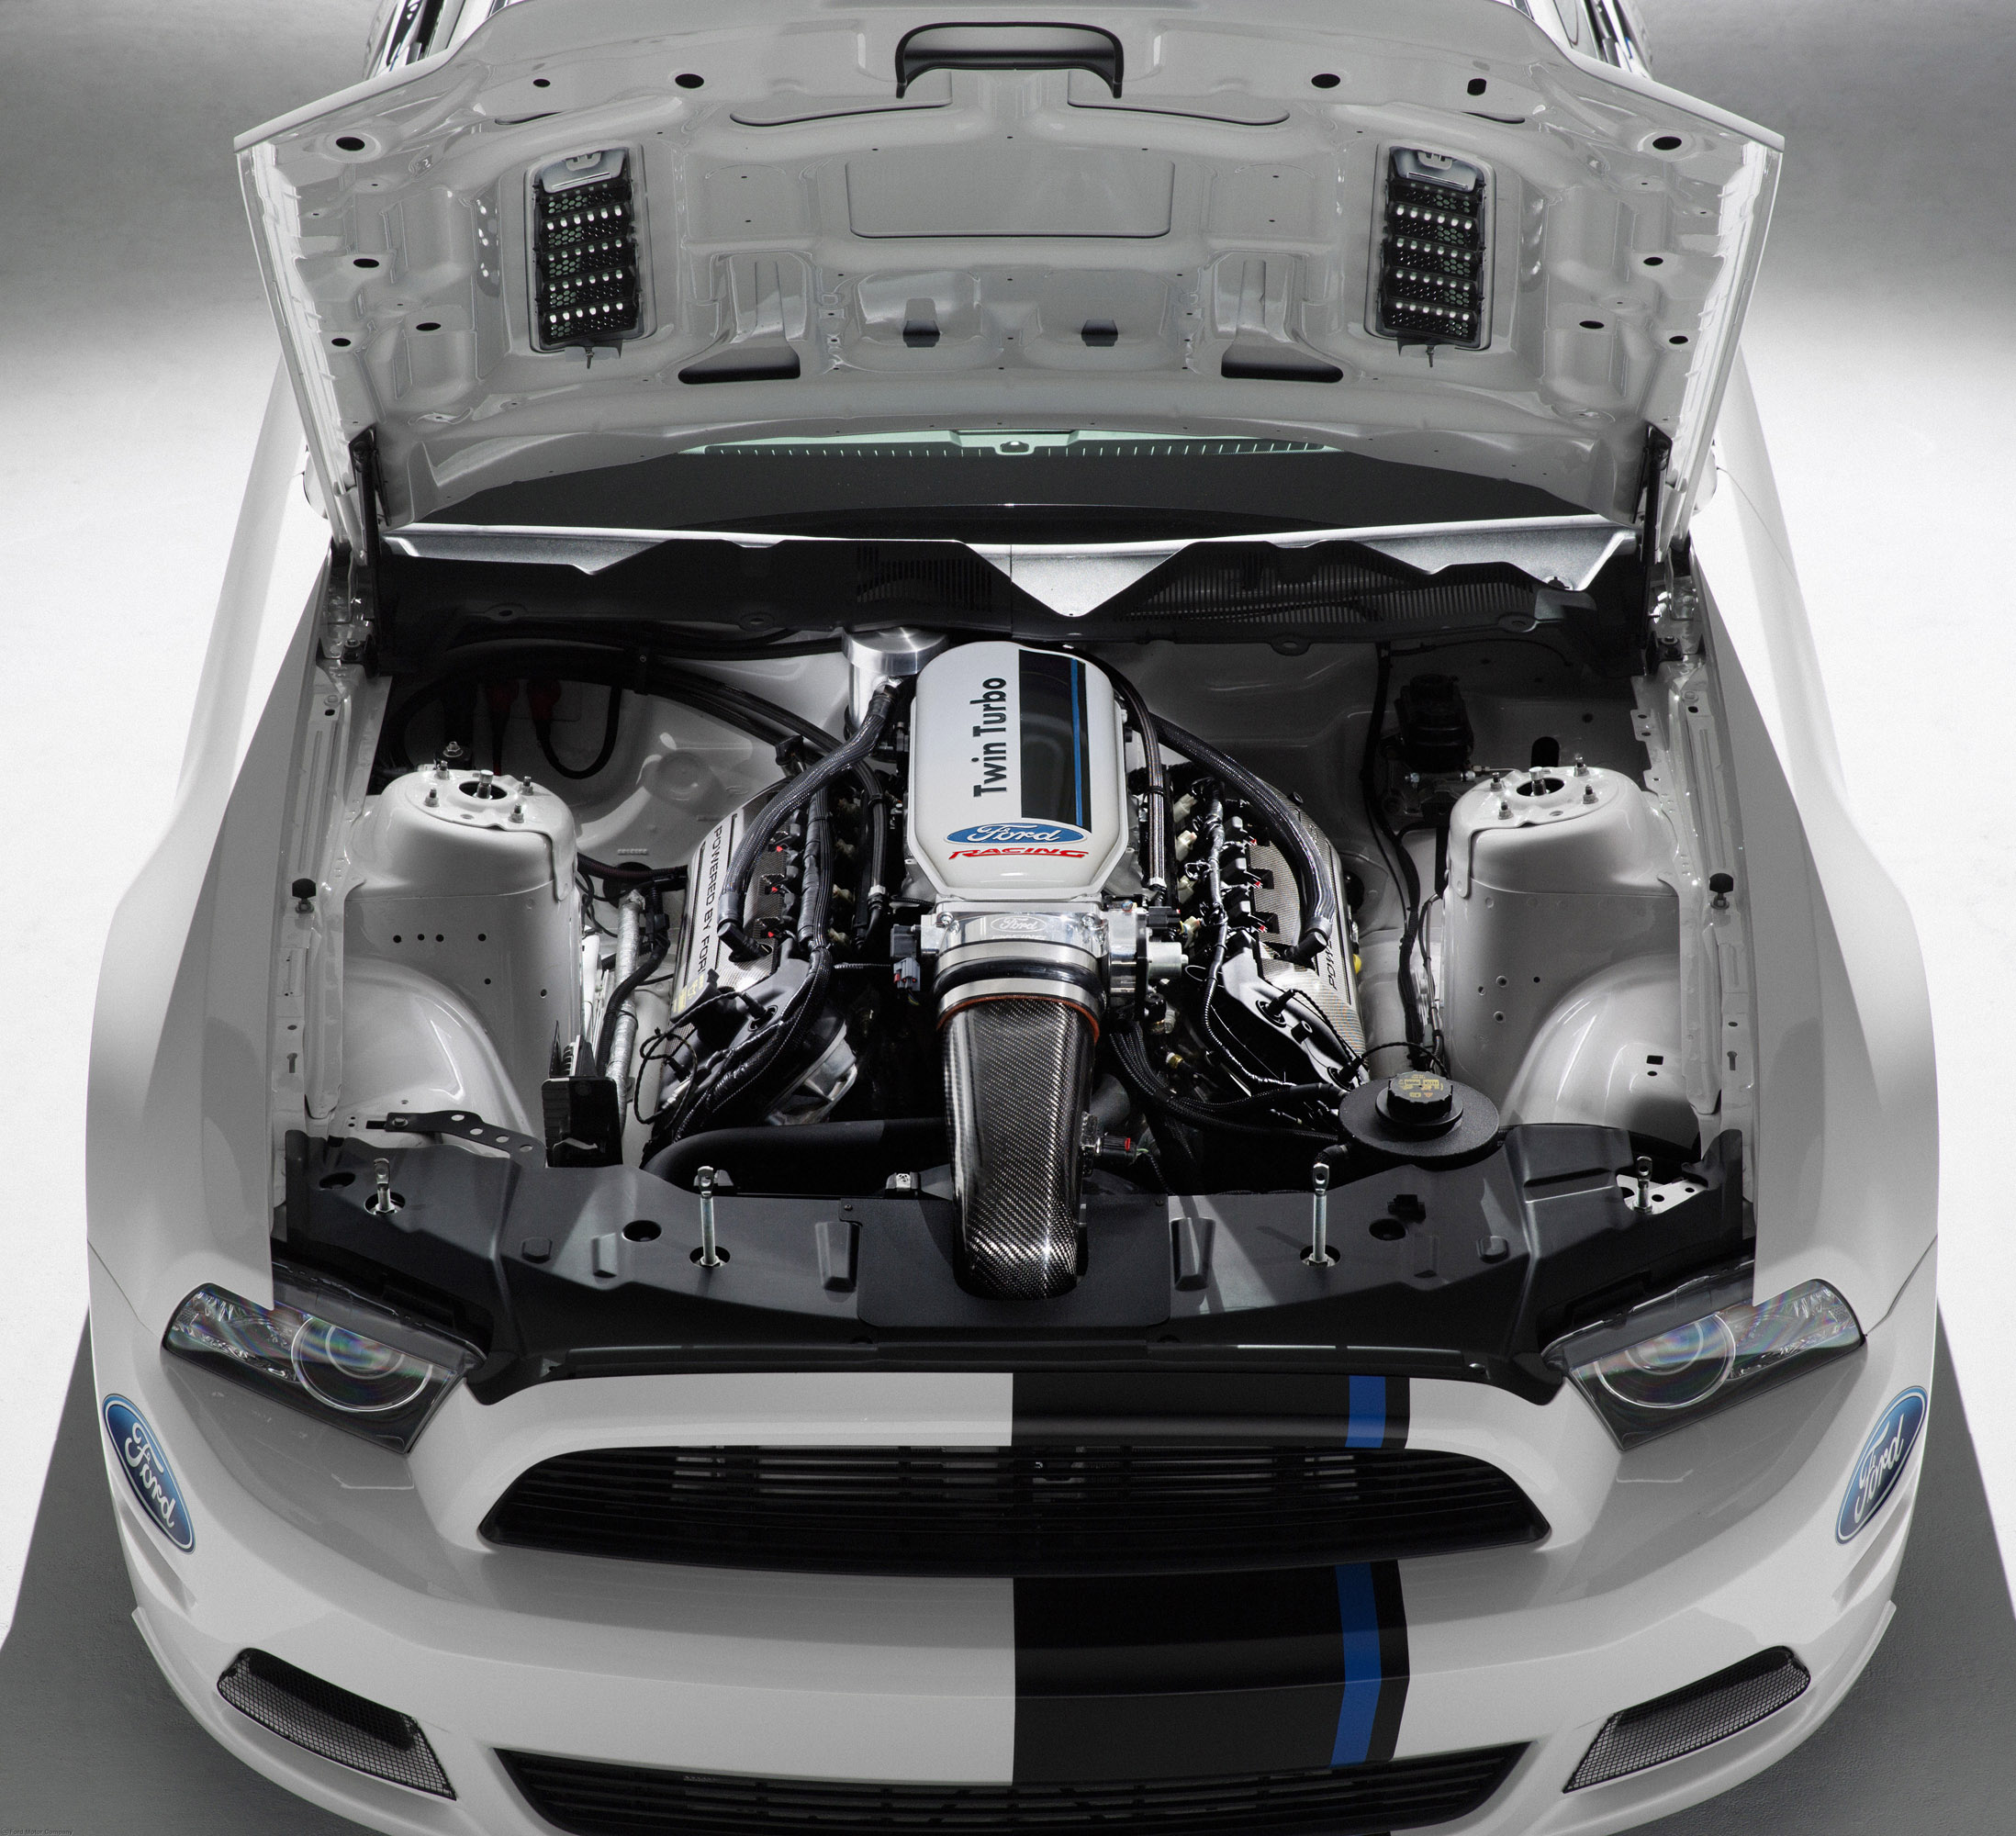 Ford Mustang Supercharged South Africa: Ford Mustang Cobra Jet Twin-Turbo Concept